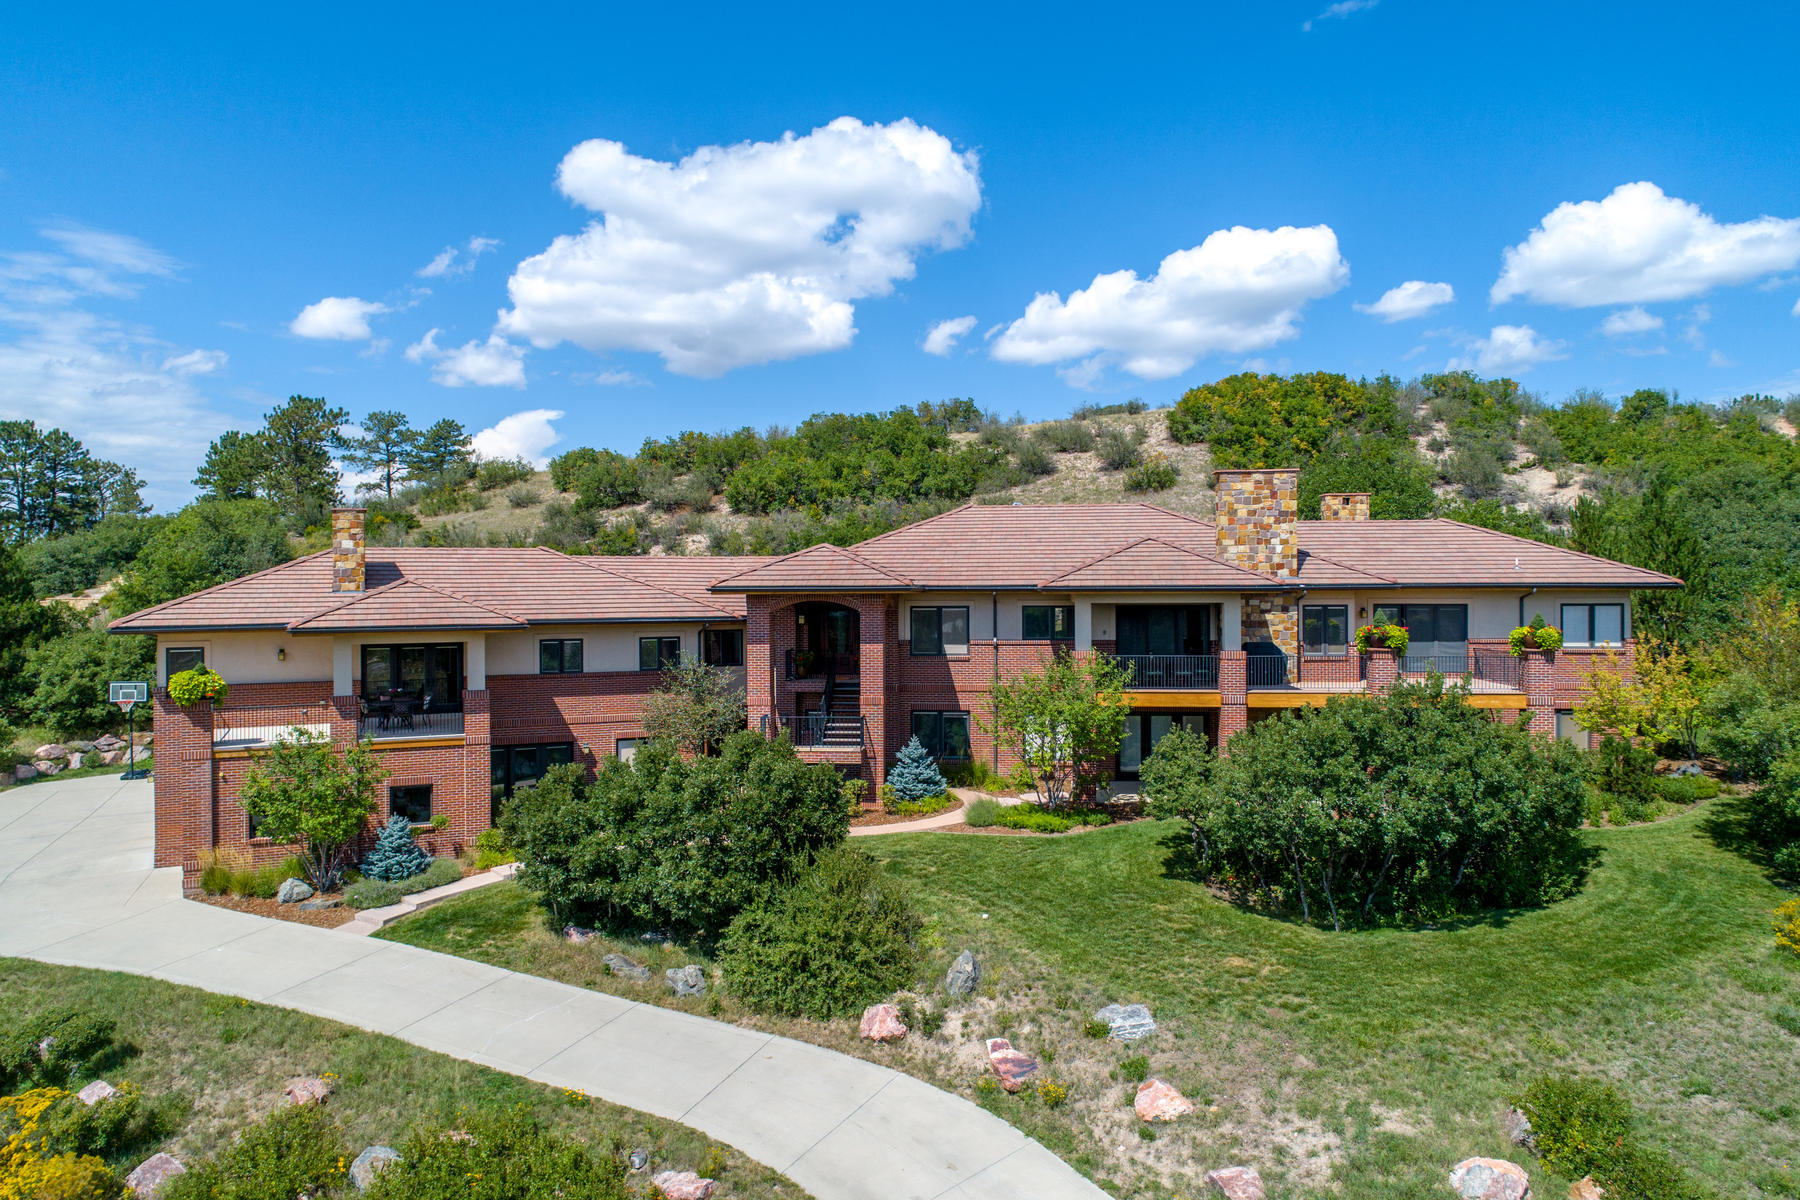 Additional photo for property listing at Extravagant custom built home with amazing views of Pikes Peak. 714 Golf Club Dr Castle Rock, Colorado 80108 United States